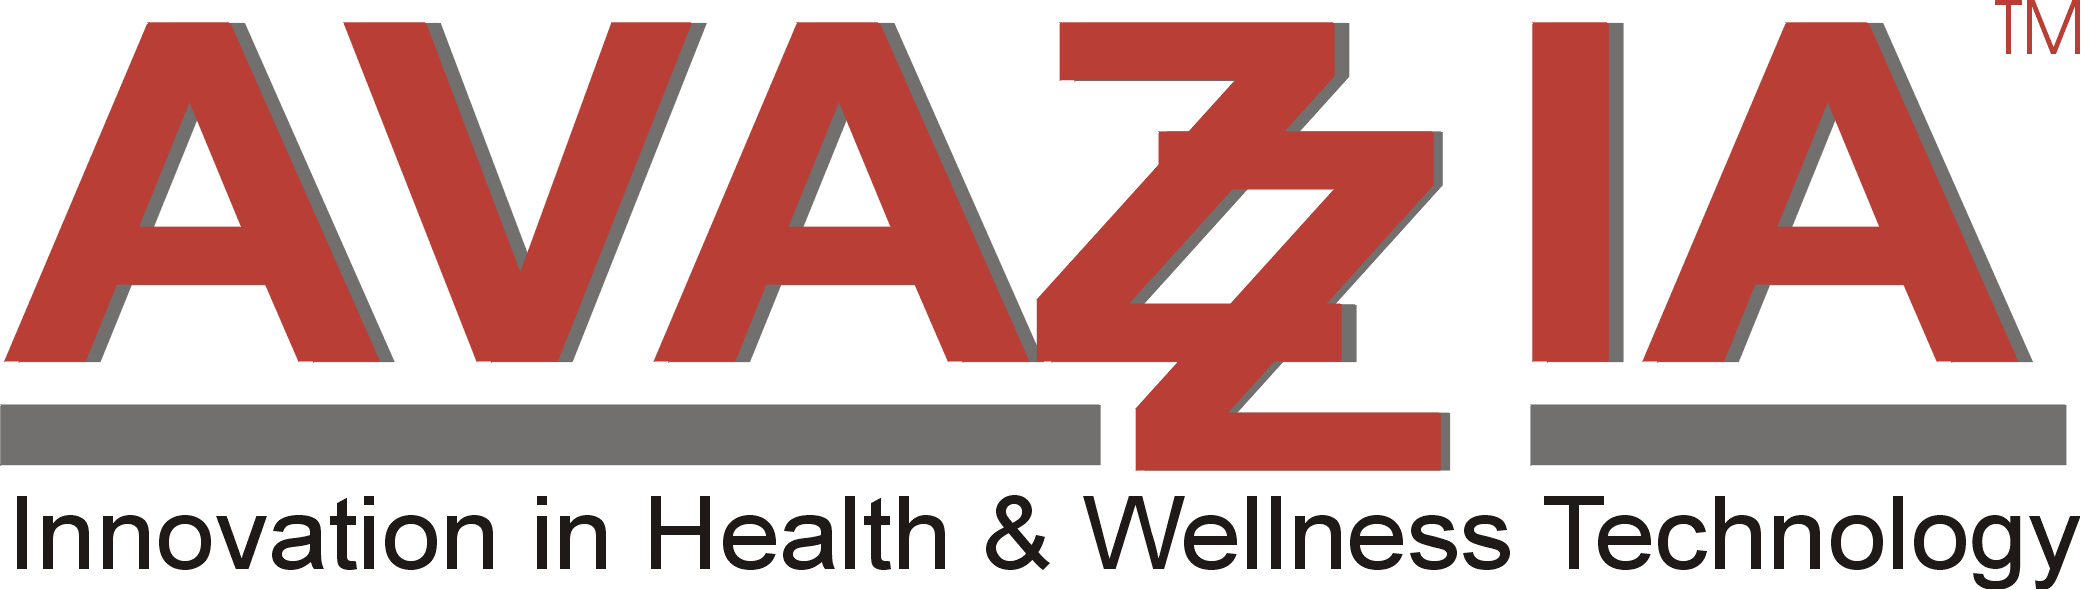 Avazzia_logo_with_tagline.png